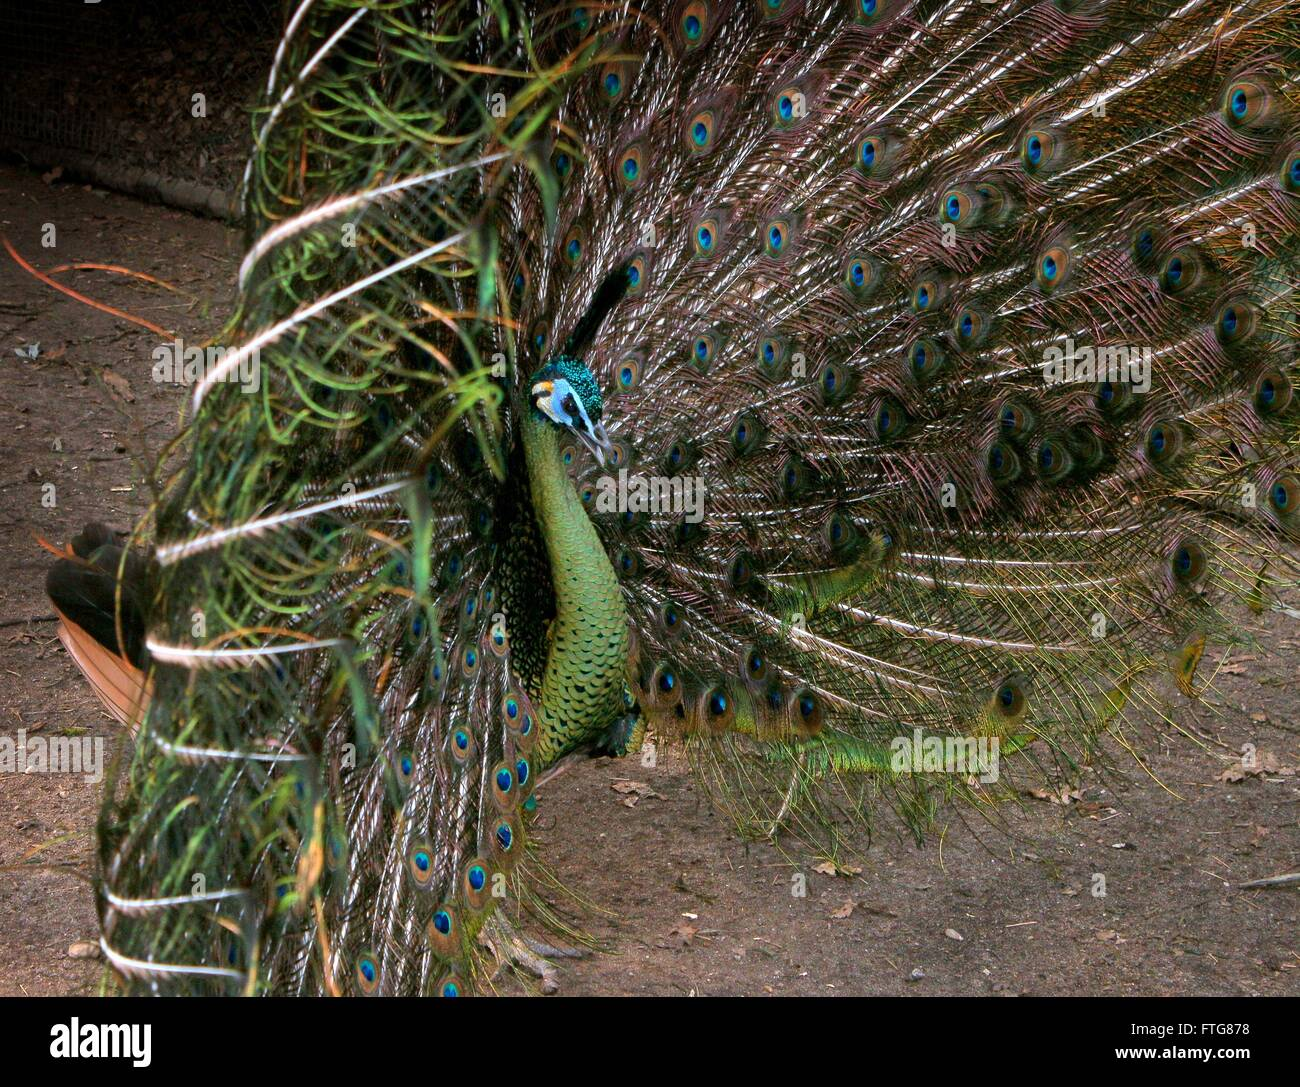 Male Asian Green Peacock or Java peafowl (Pavo muticus) with tail feathers fanning out, courtship display - Stock Image